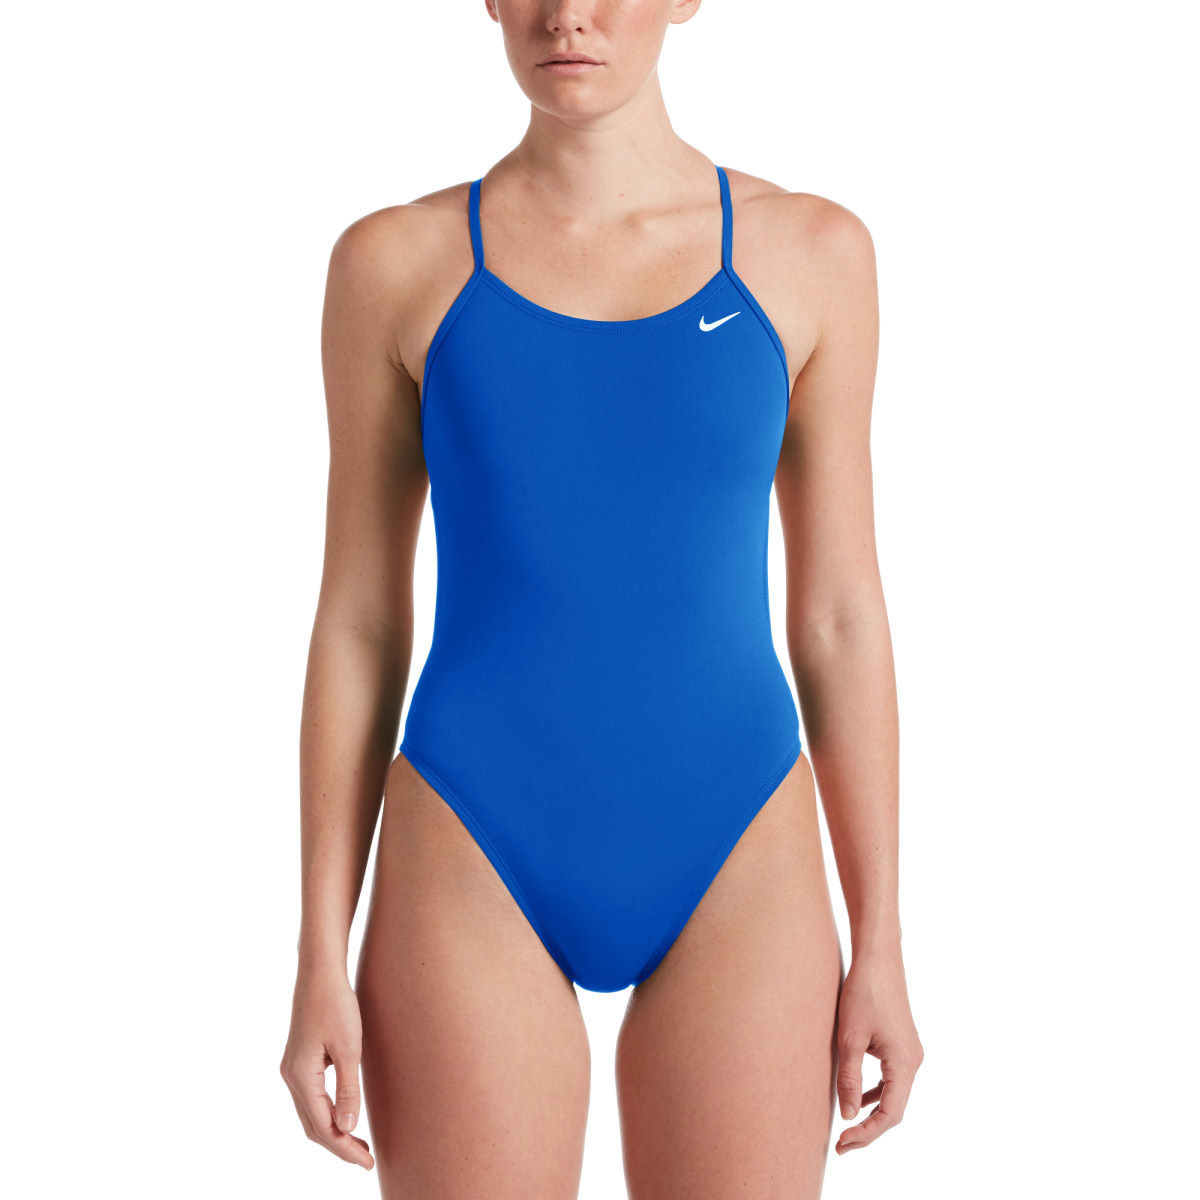 Nike Womens Hydrastrong Swimsuit (cutout) - 28 494 Game Royal